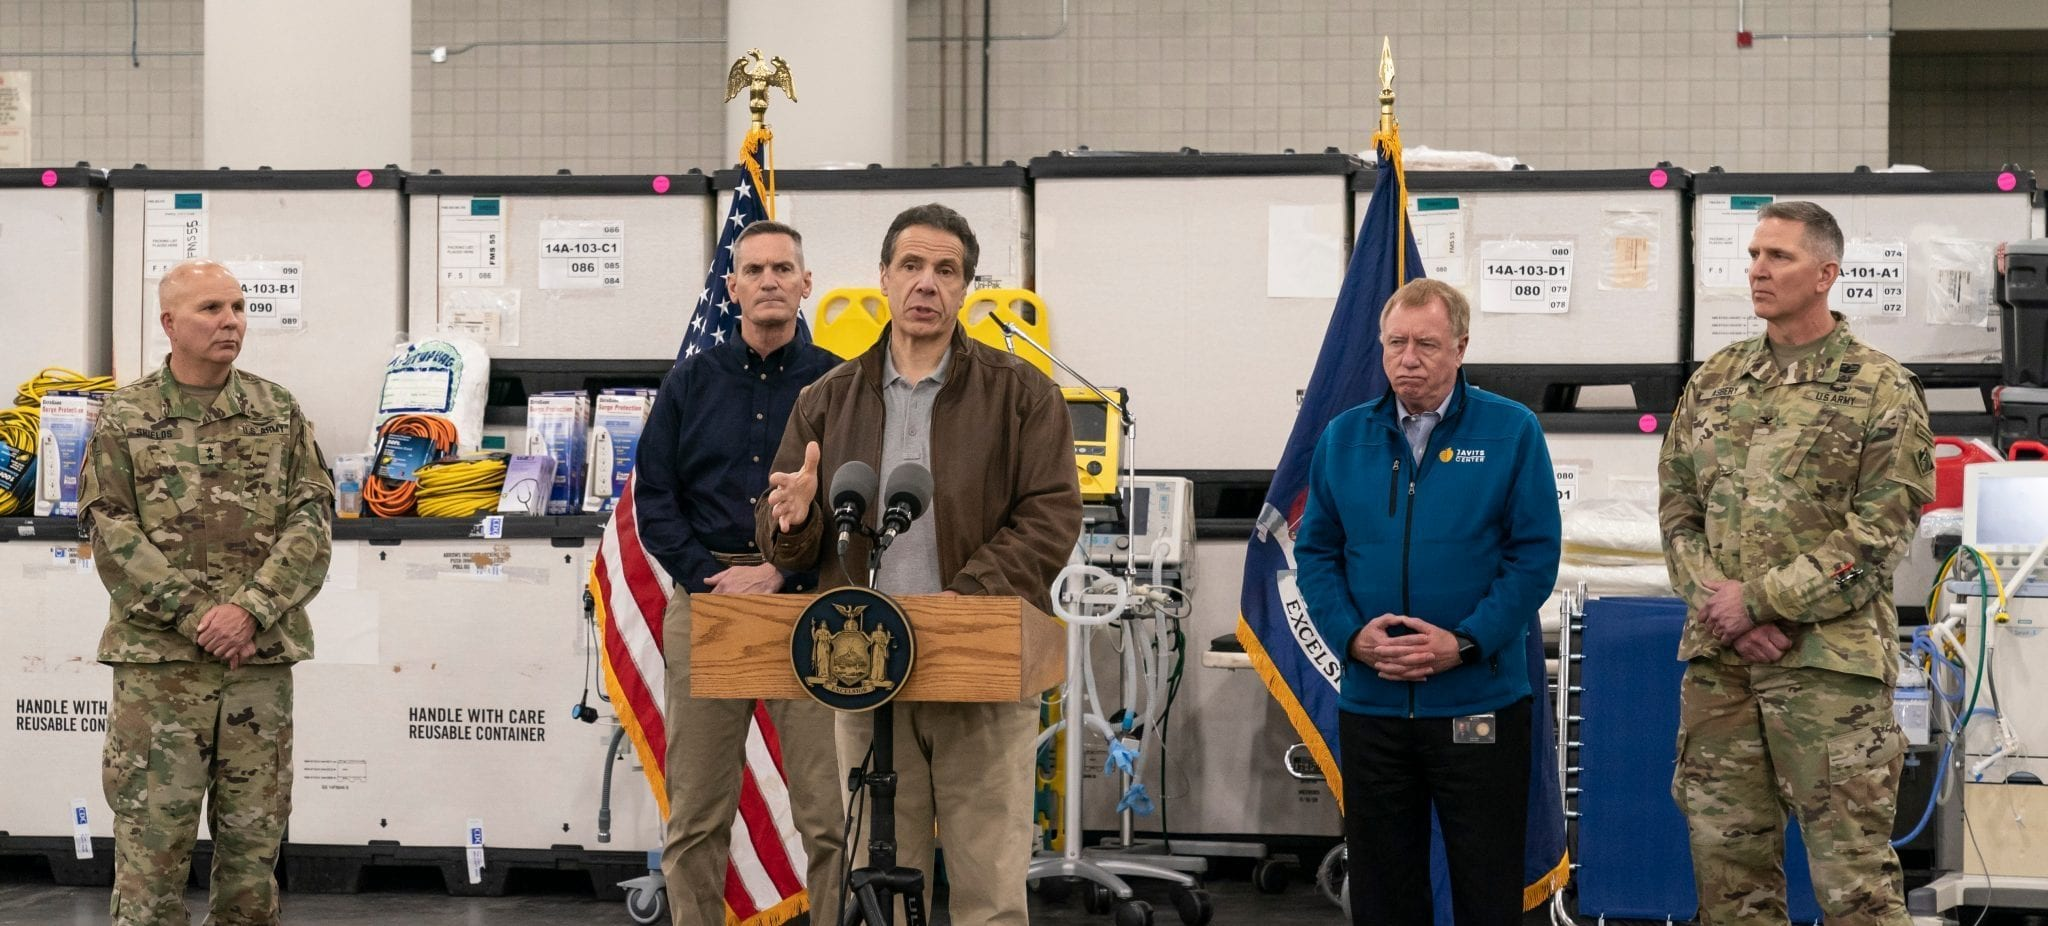 Cuomo on COVID-19 in Nursing Homes: 'It's Not Our Job' | The American Spectator | USA News and Politics